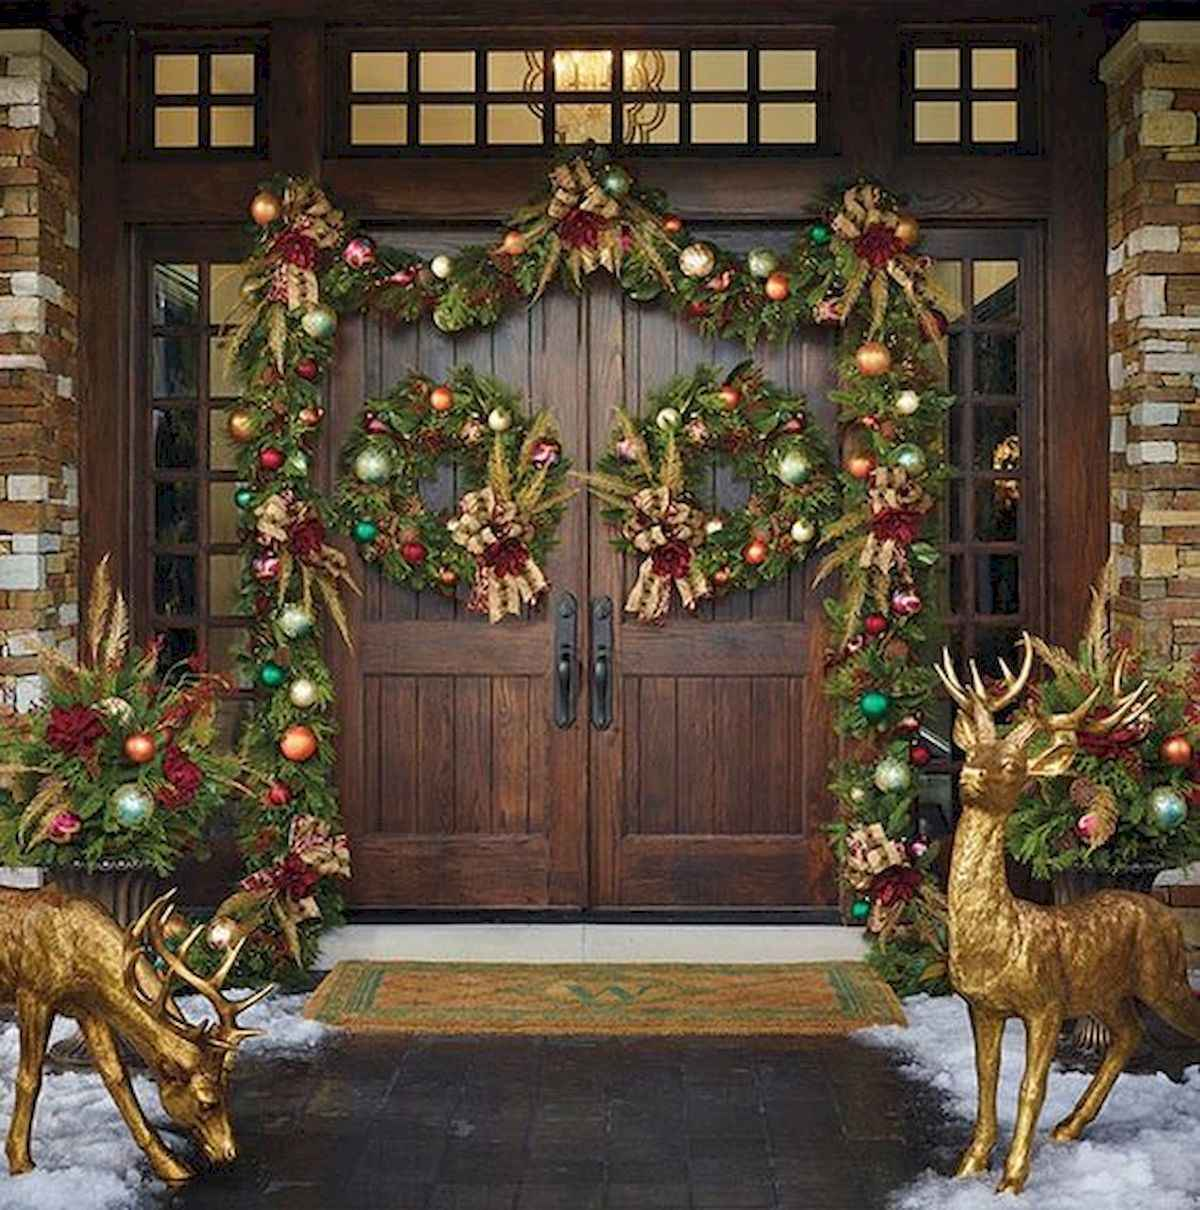 1200 1210 in 50 stunning front porch christmas lights decorations ideas